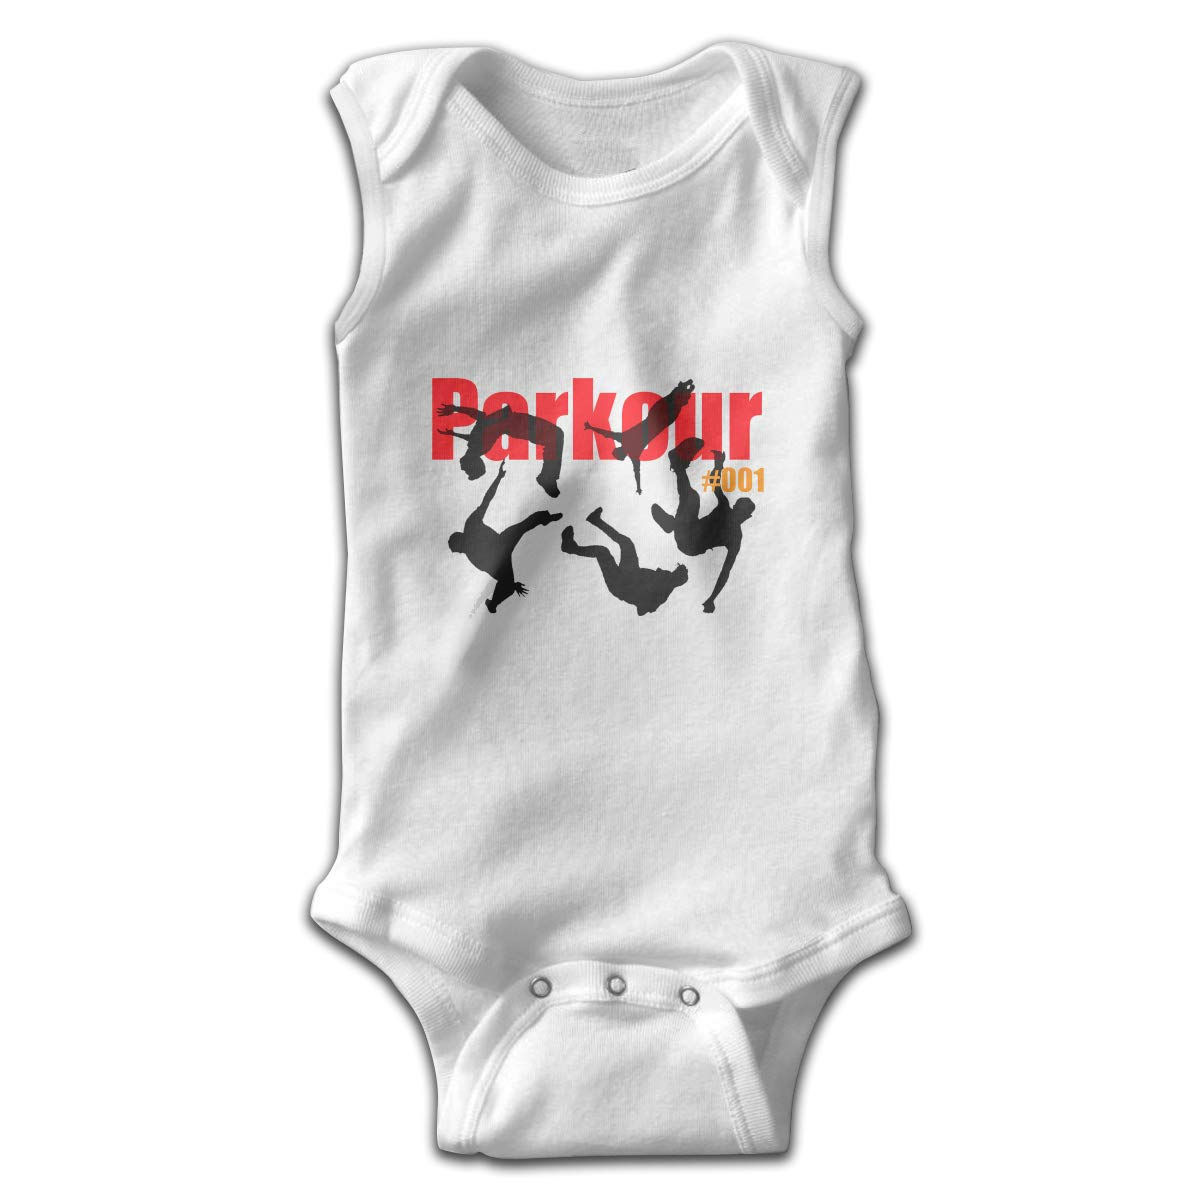 Efbj Toddler Baby Boys Rompers Sleeveless Cotton Jumpsuit,Parkour Outfit Spring Pajamas